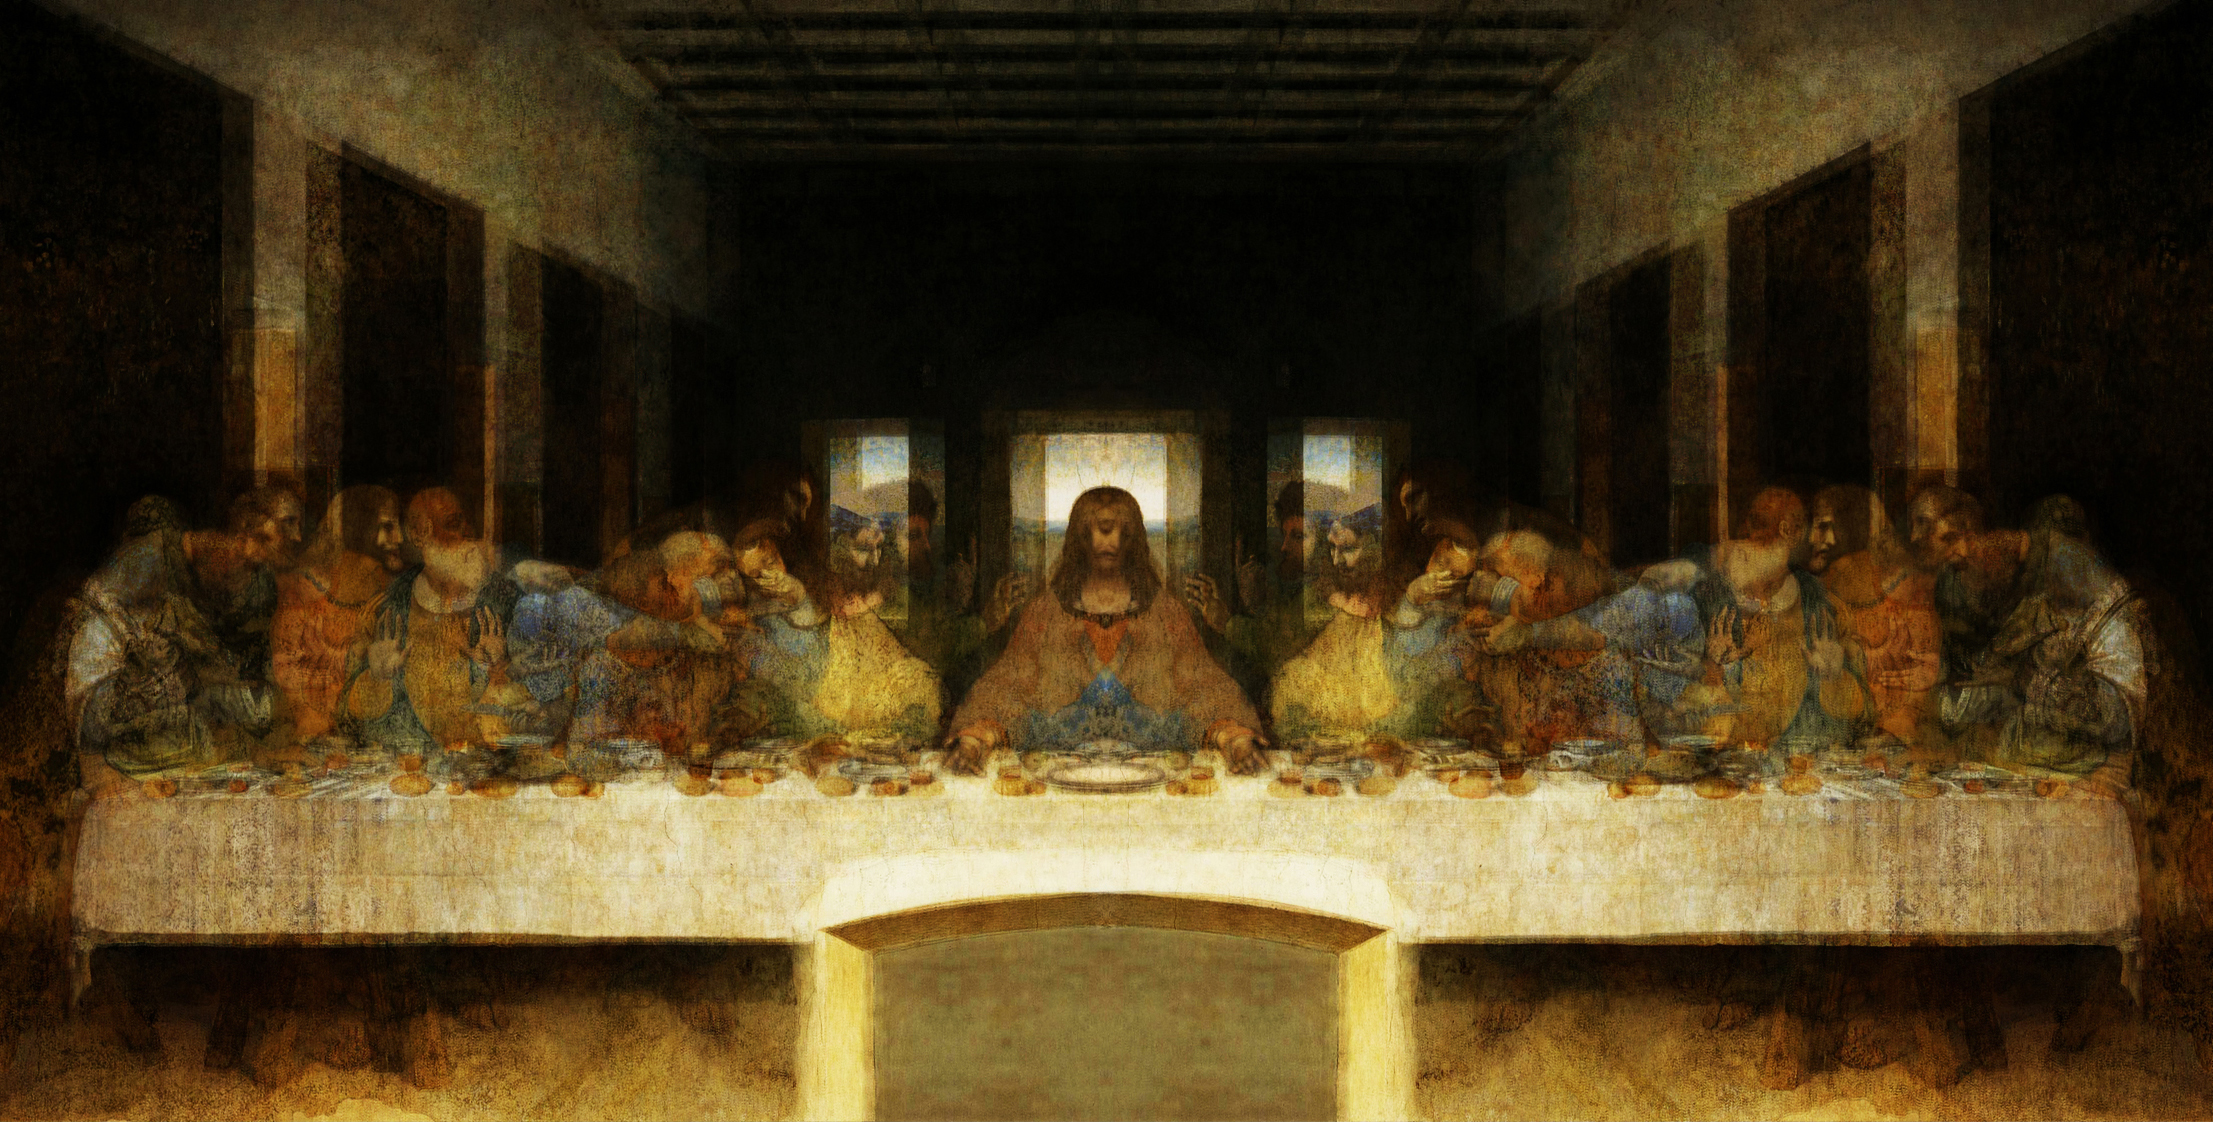 WoW! Hidden Image Exposed in The Last Supper Painting ... Da Vinci Last Supper Original